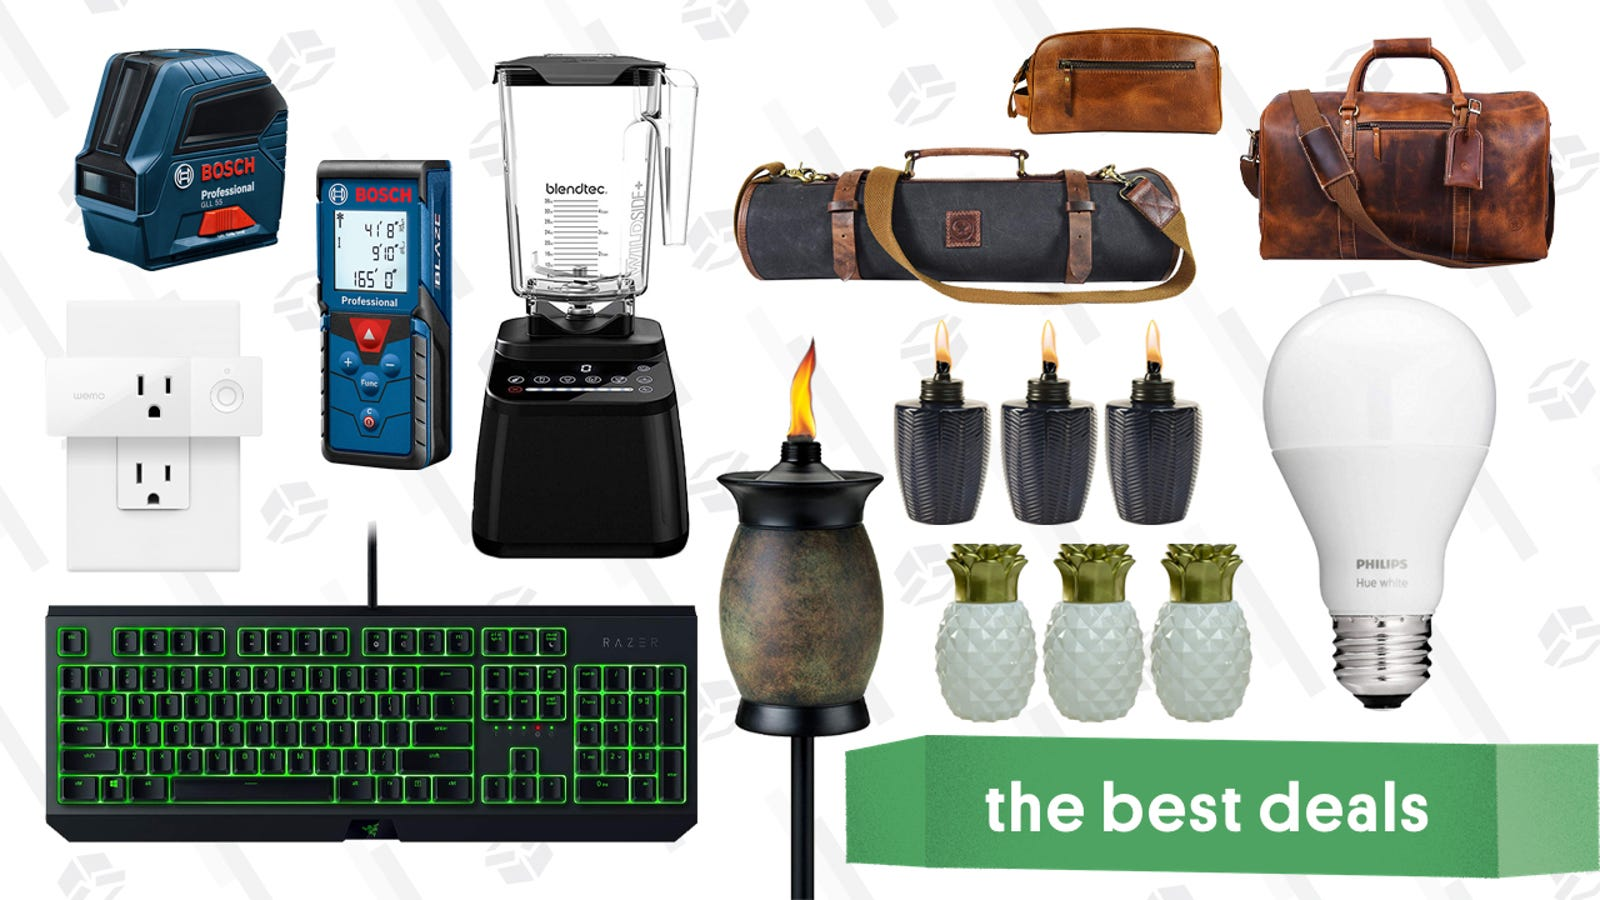 Saturday's Best Deals: Nintendo Switch, Philips Hue Bulbs, Tiki Torches, Cat Lounges, and More